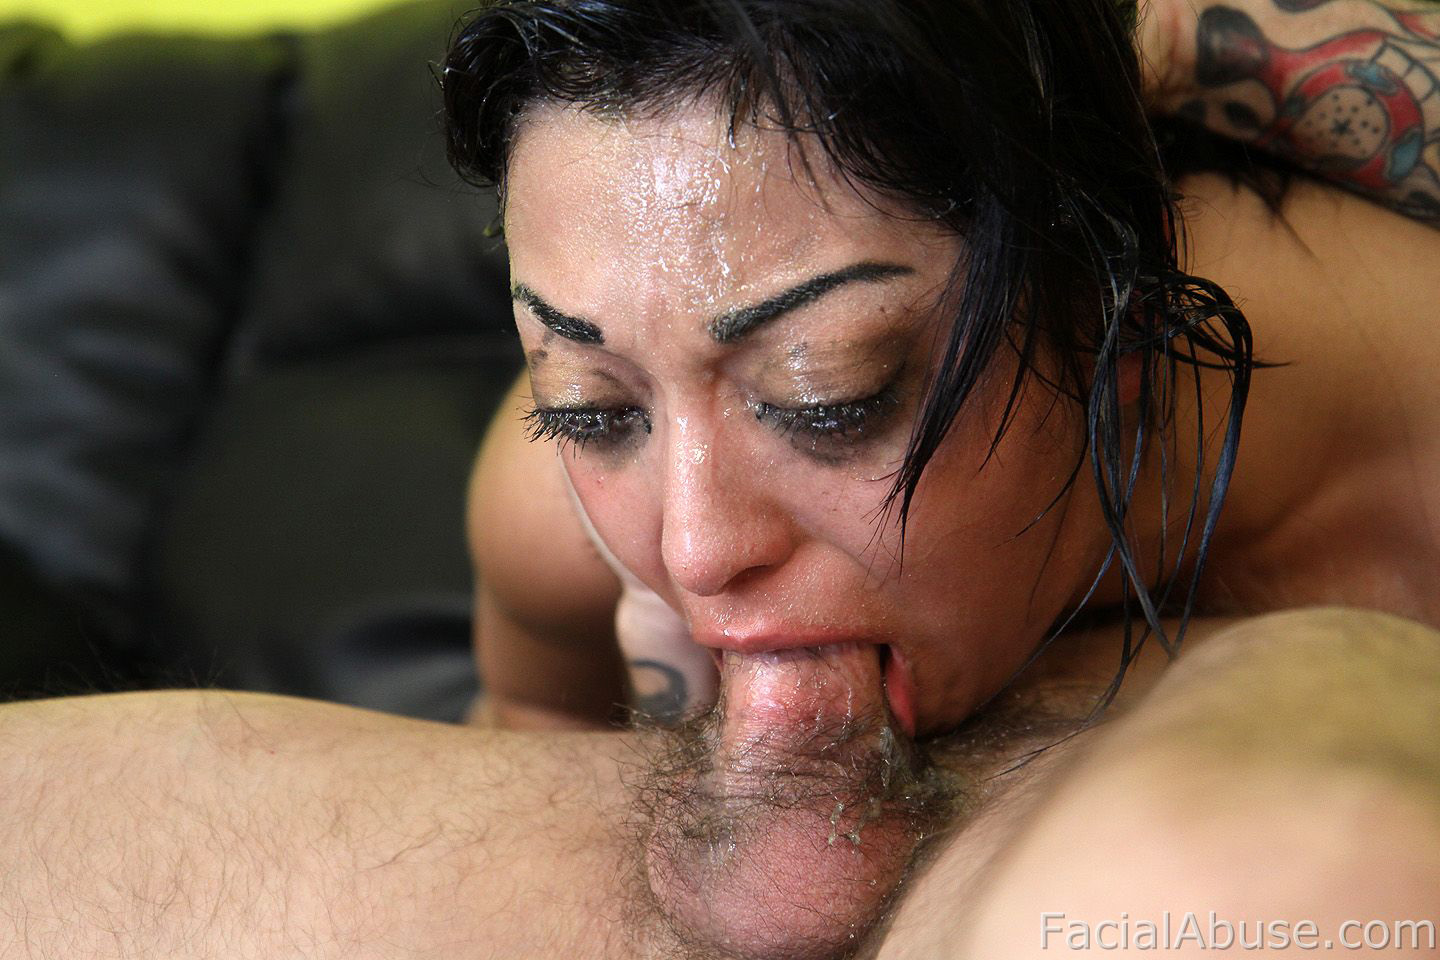 abuse facial porn Mia Christina Doring – Medium.